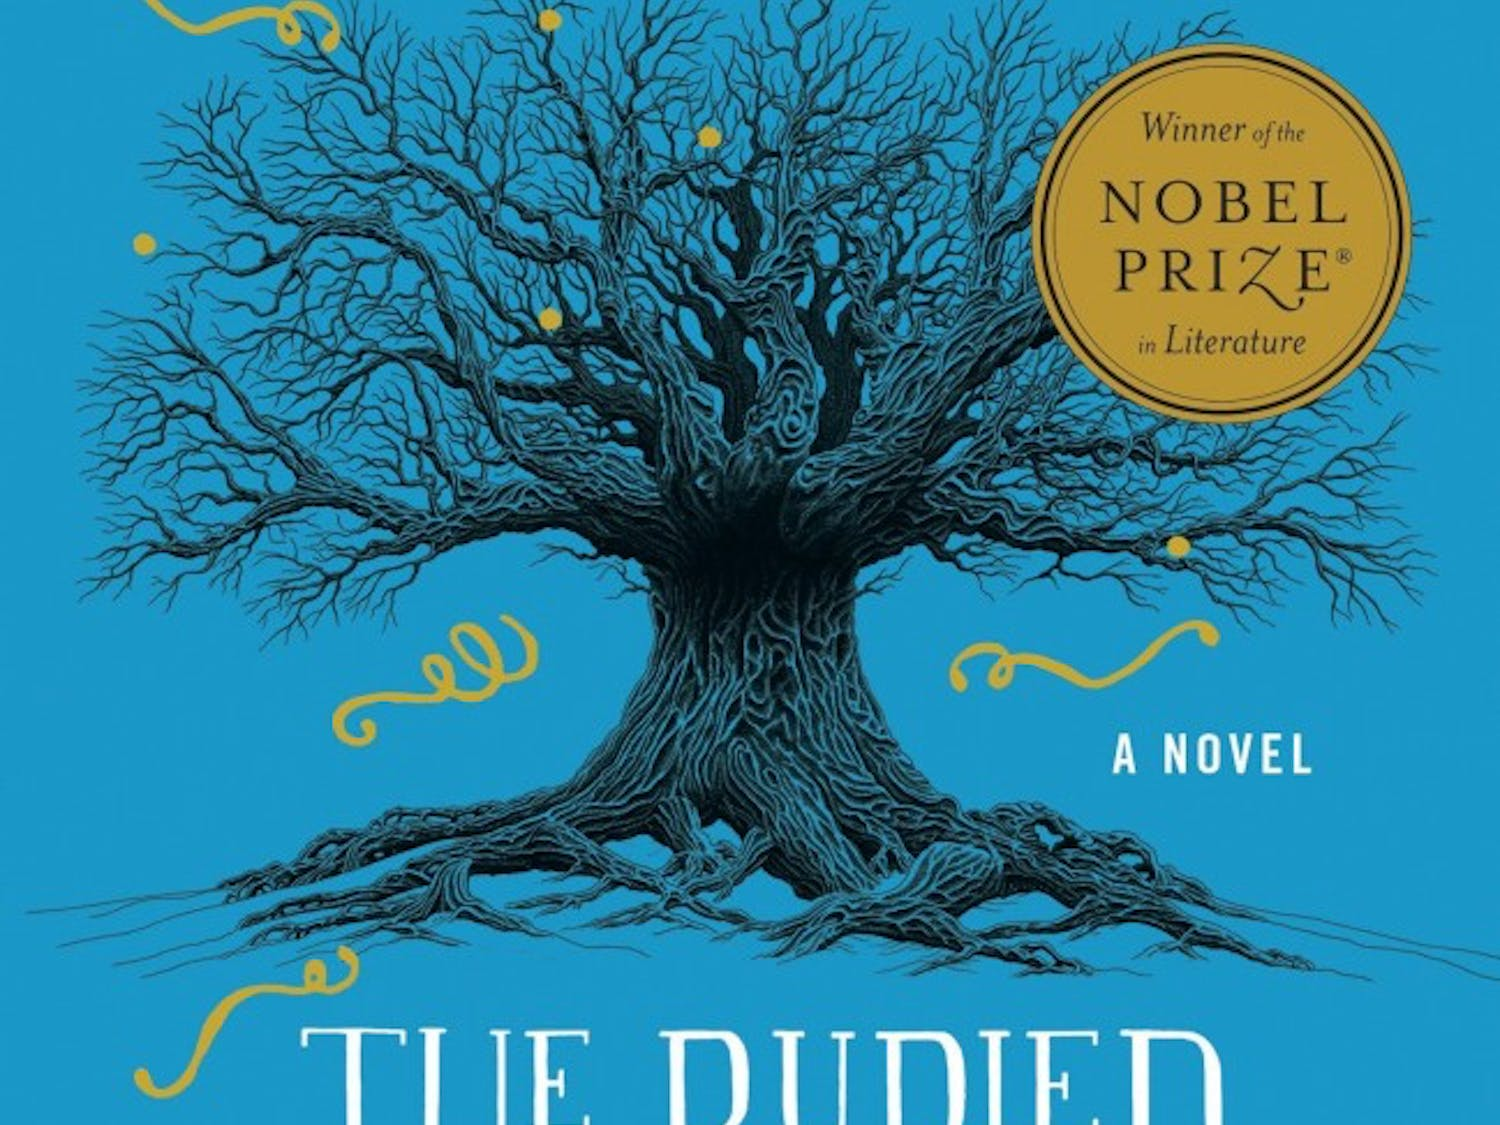 """Kazuo Ishiguro is an acclaimedauthor, but """"The Buried Giant"""" shows that his writing can lack profundity."""